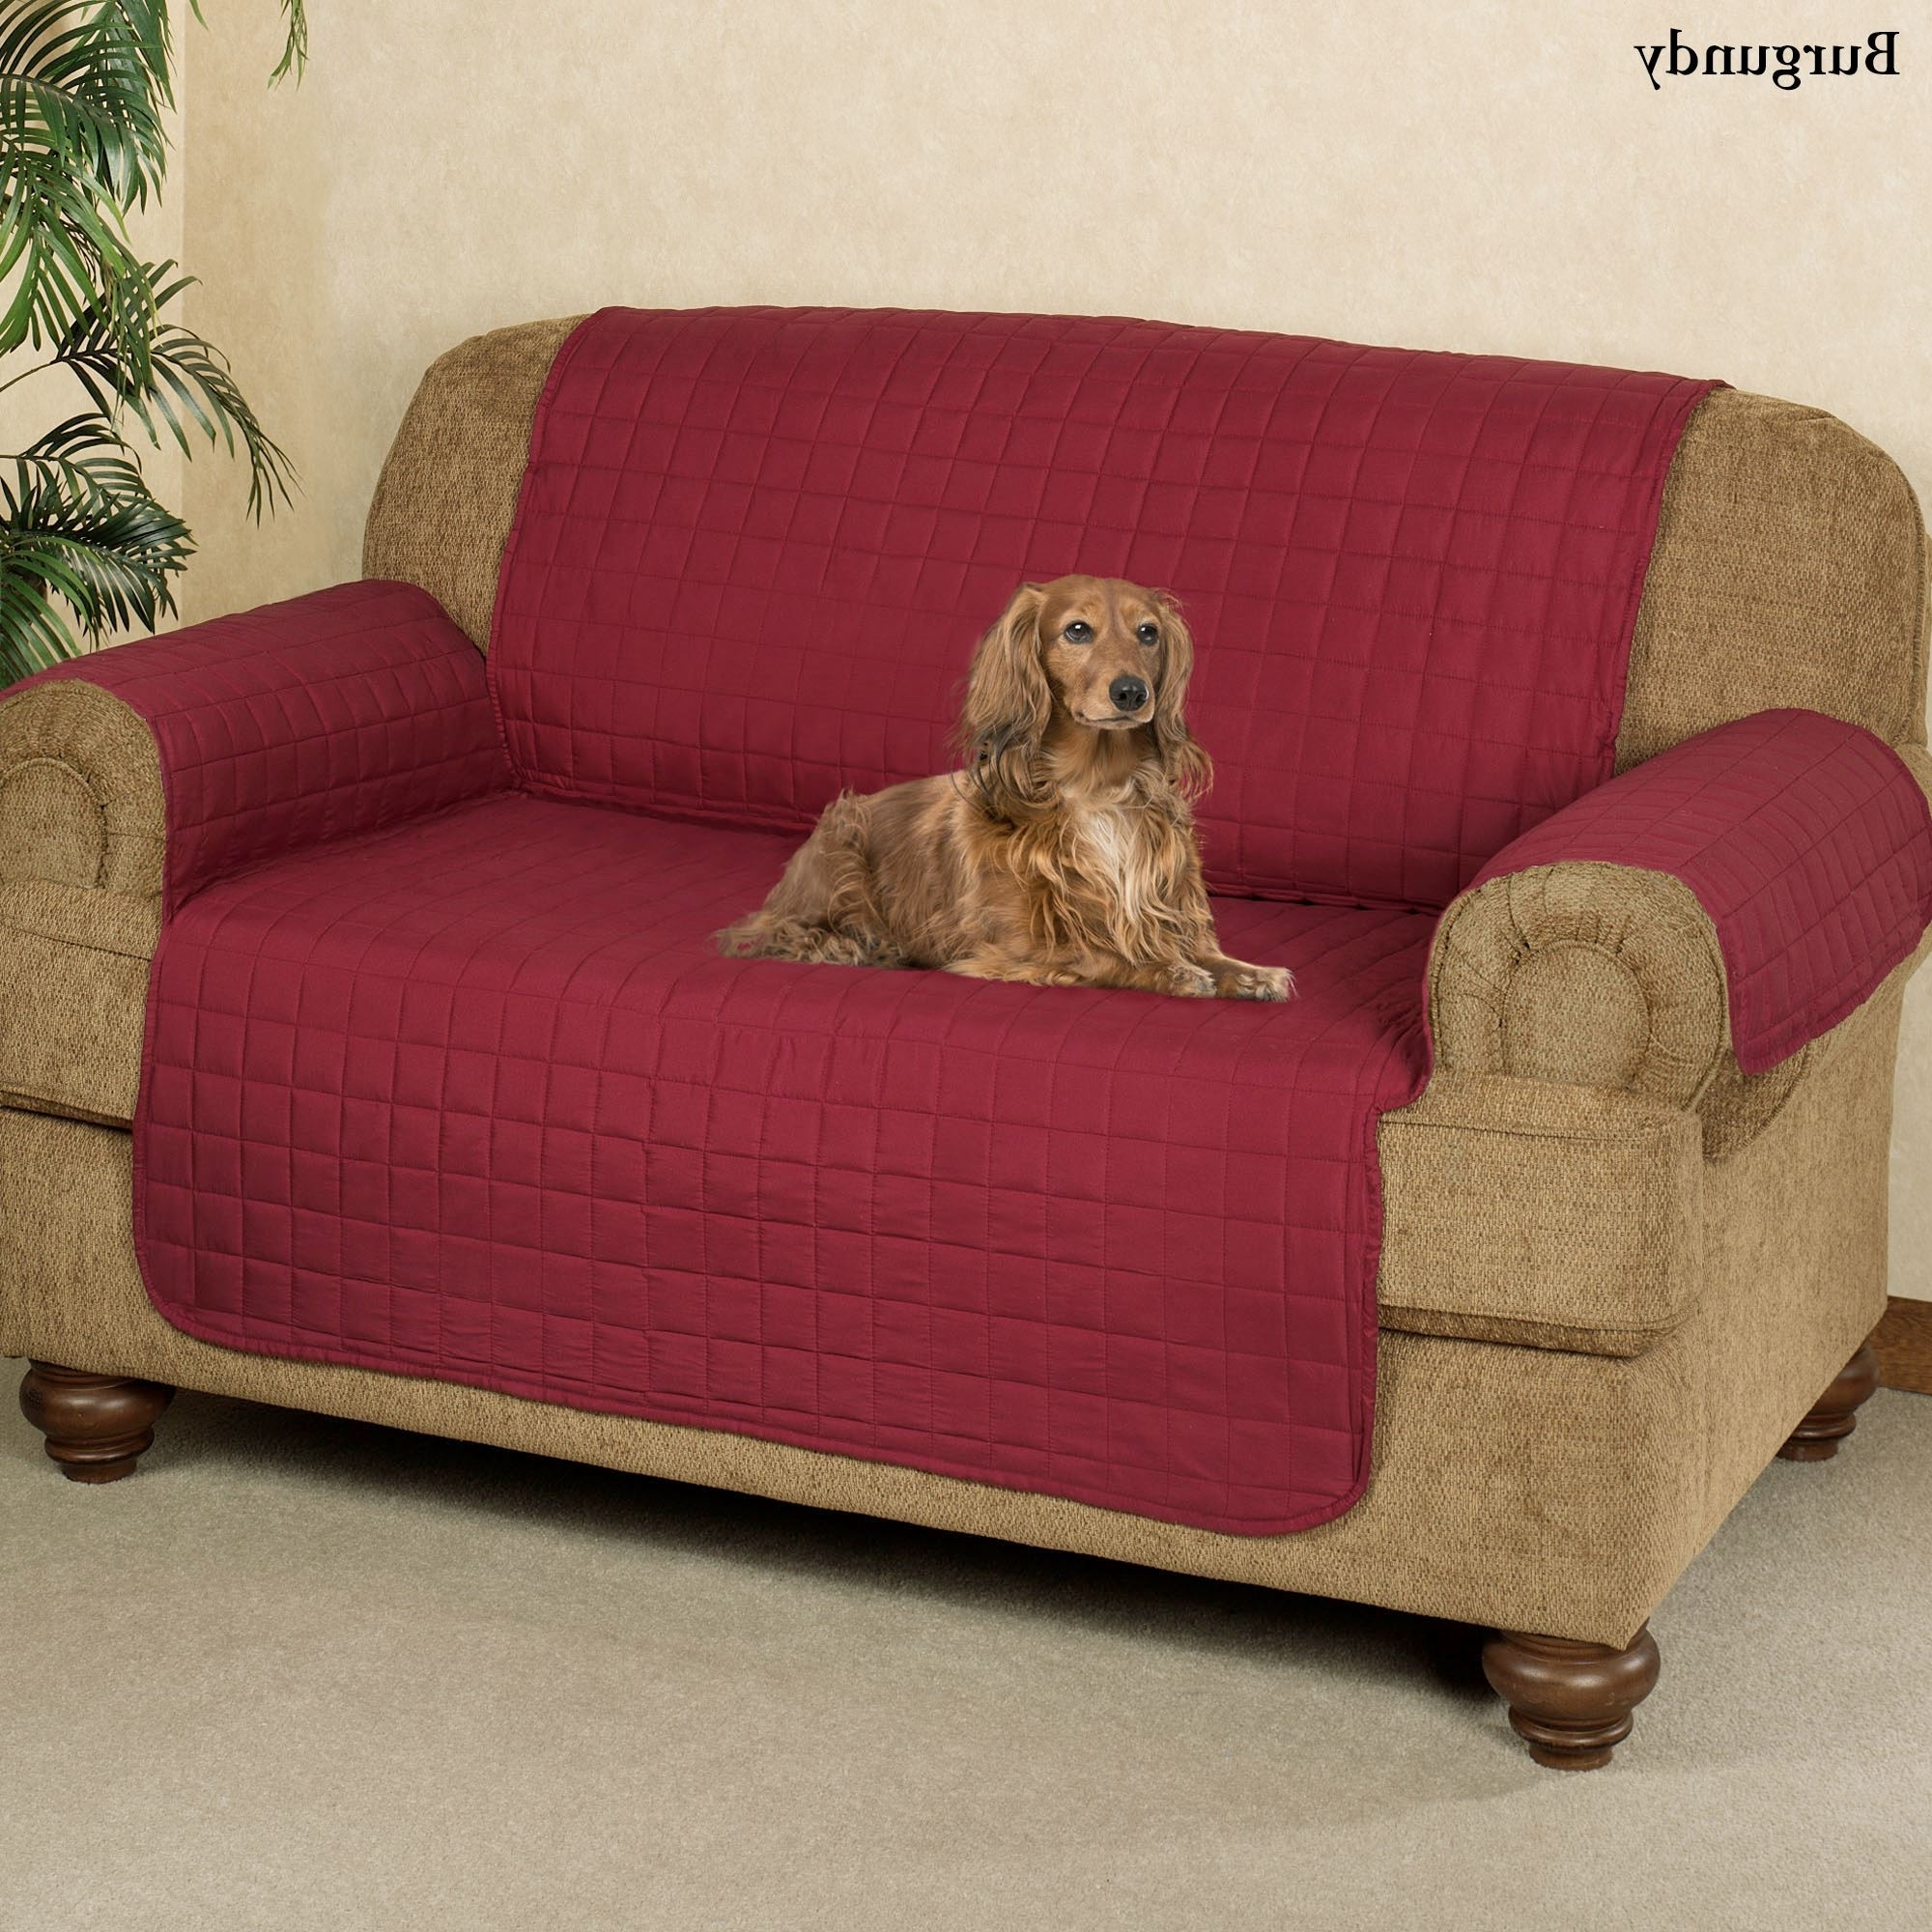 Microfiber Pet Furniture Covers With Tuck In Flaps Pertaining To 2017 Lazy Sofa Chairs (View 11 of 15)